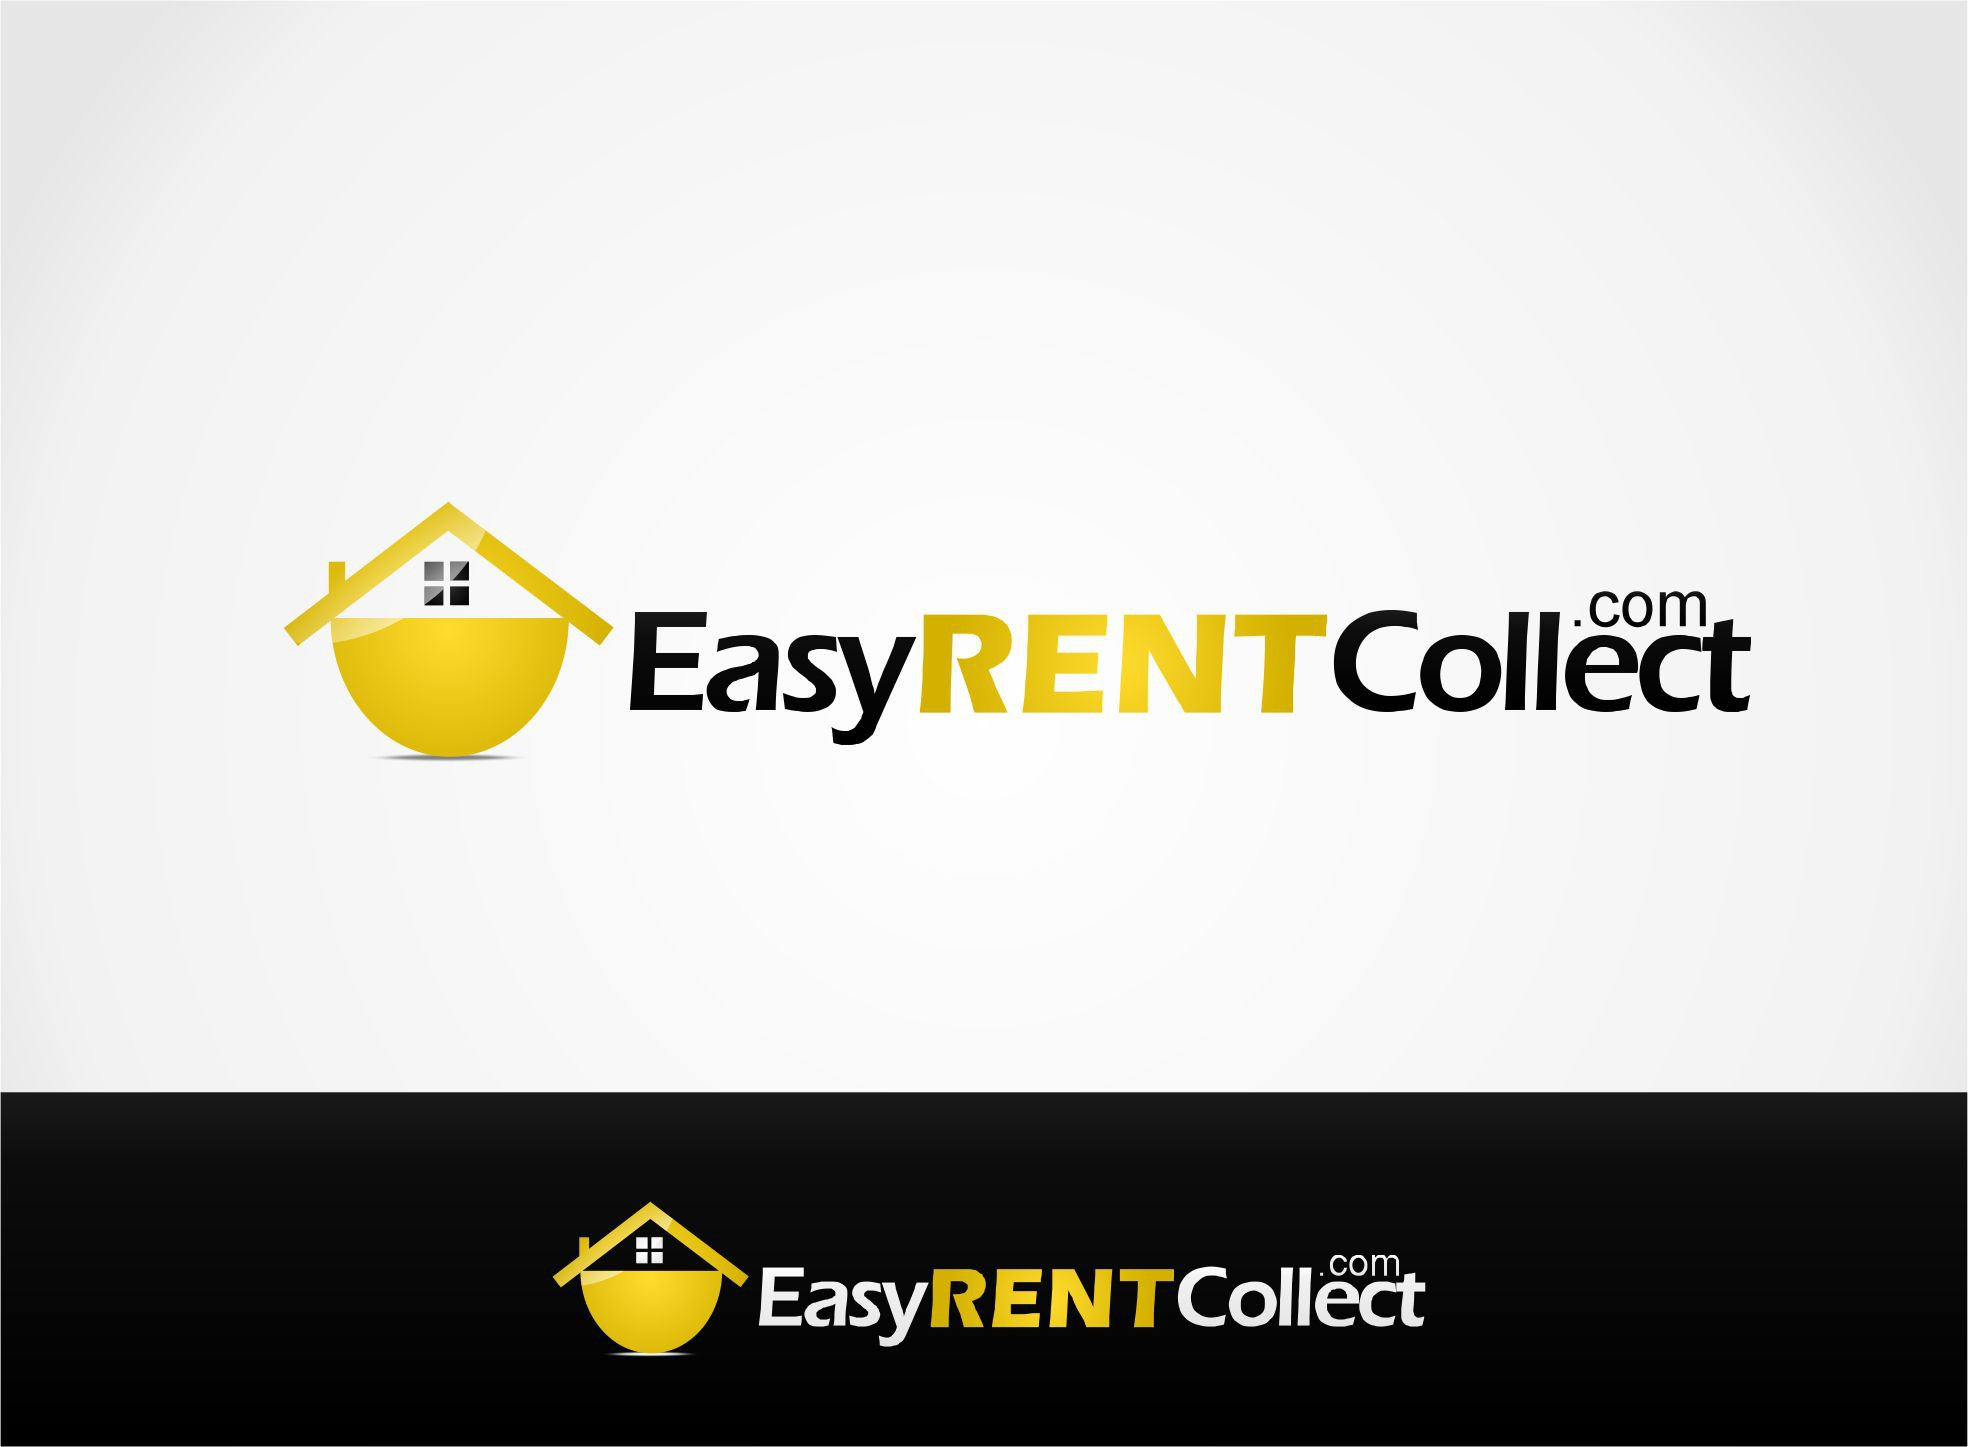 New logo wanted for EasyRentCollect.com